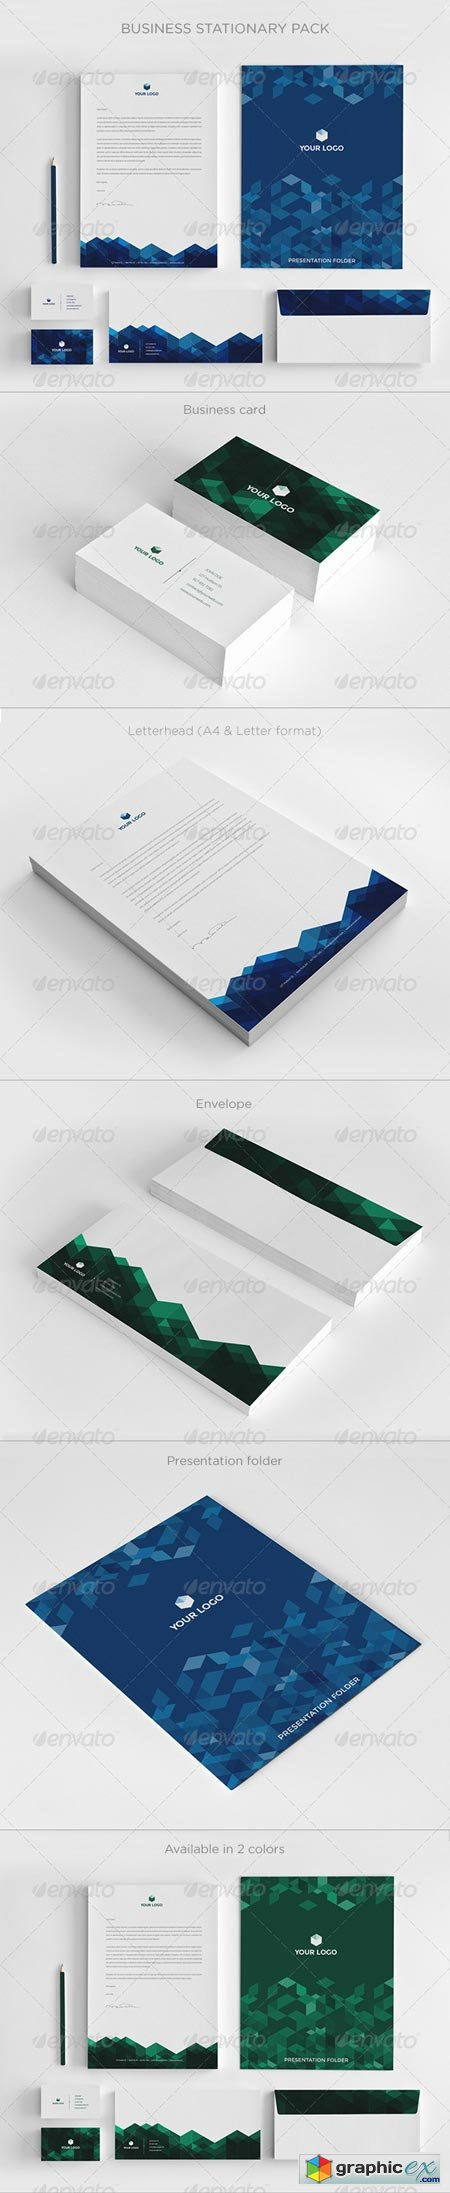 Business Stationary Pack II 6380354